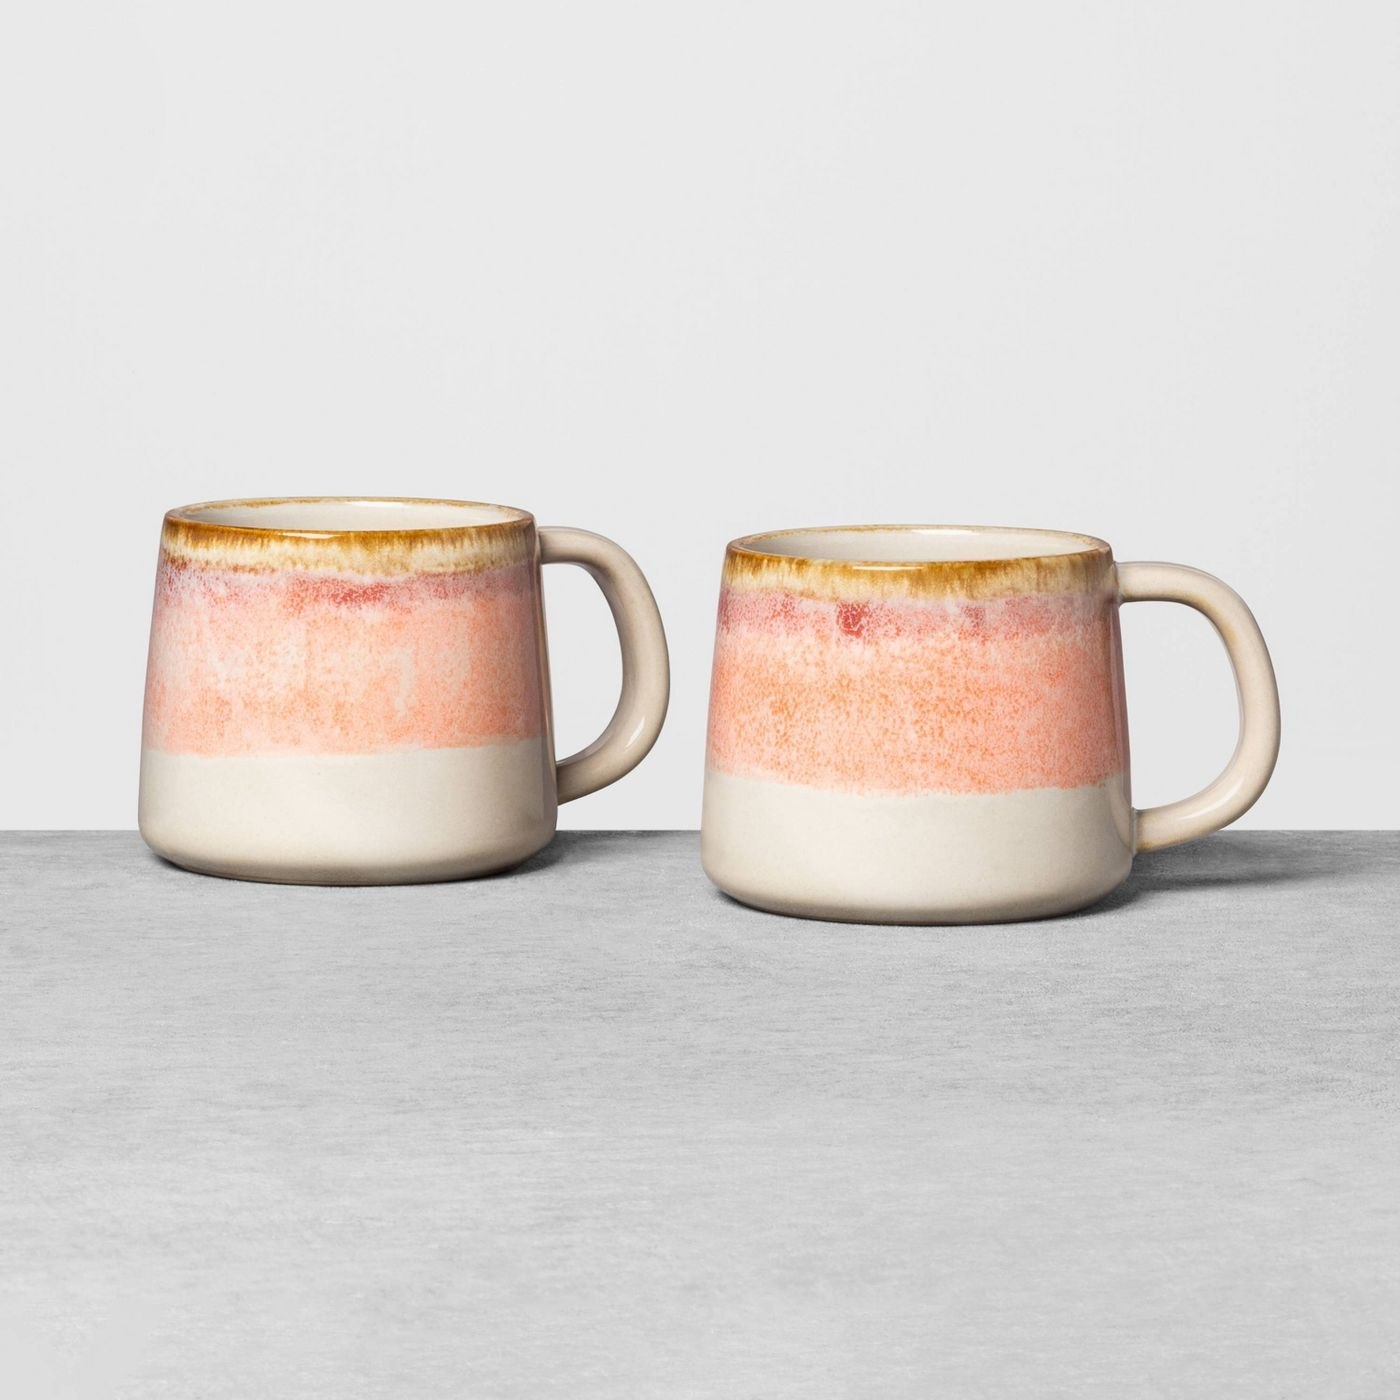 Shades of peach and pink in a set of mugs by Hearth and Hand